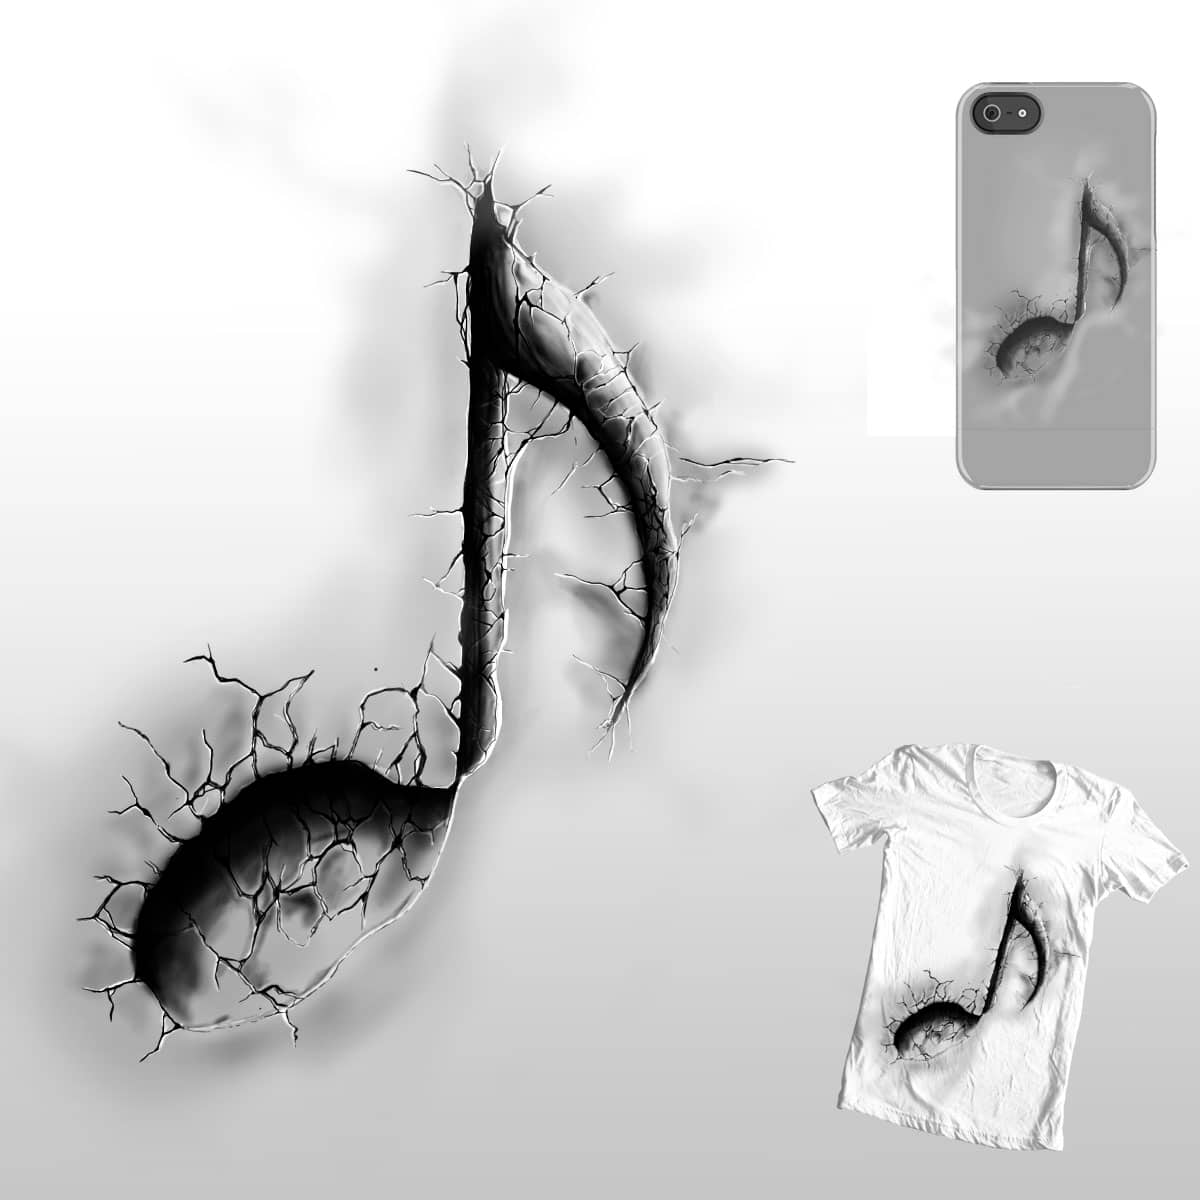 cracked note by hadee on Threadless